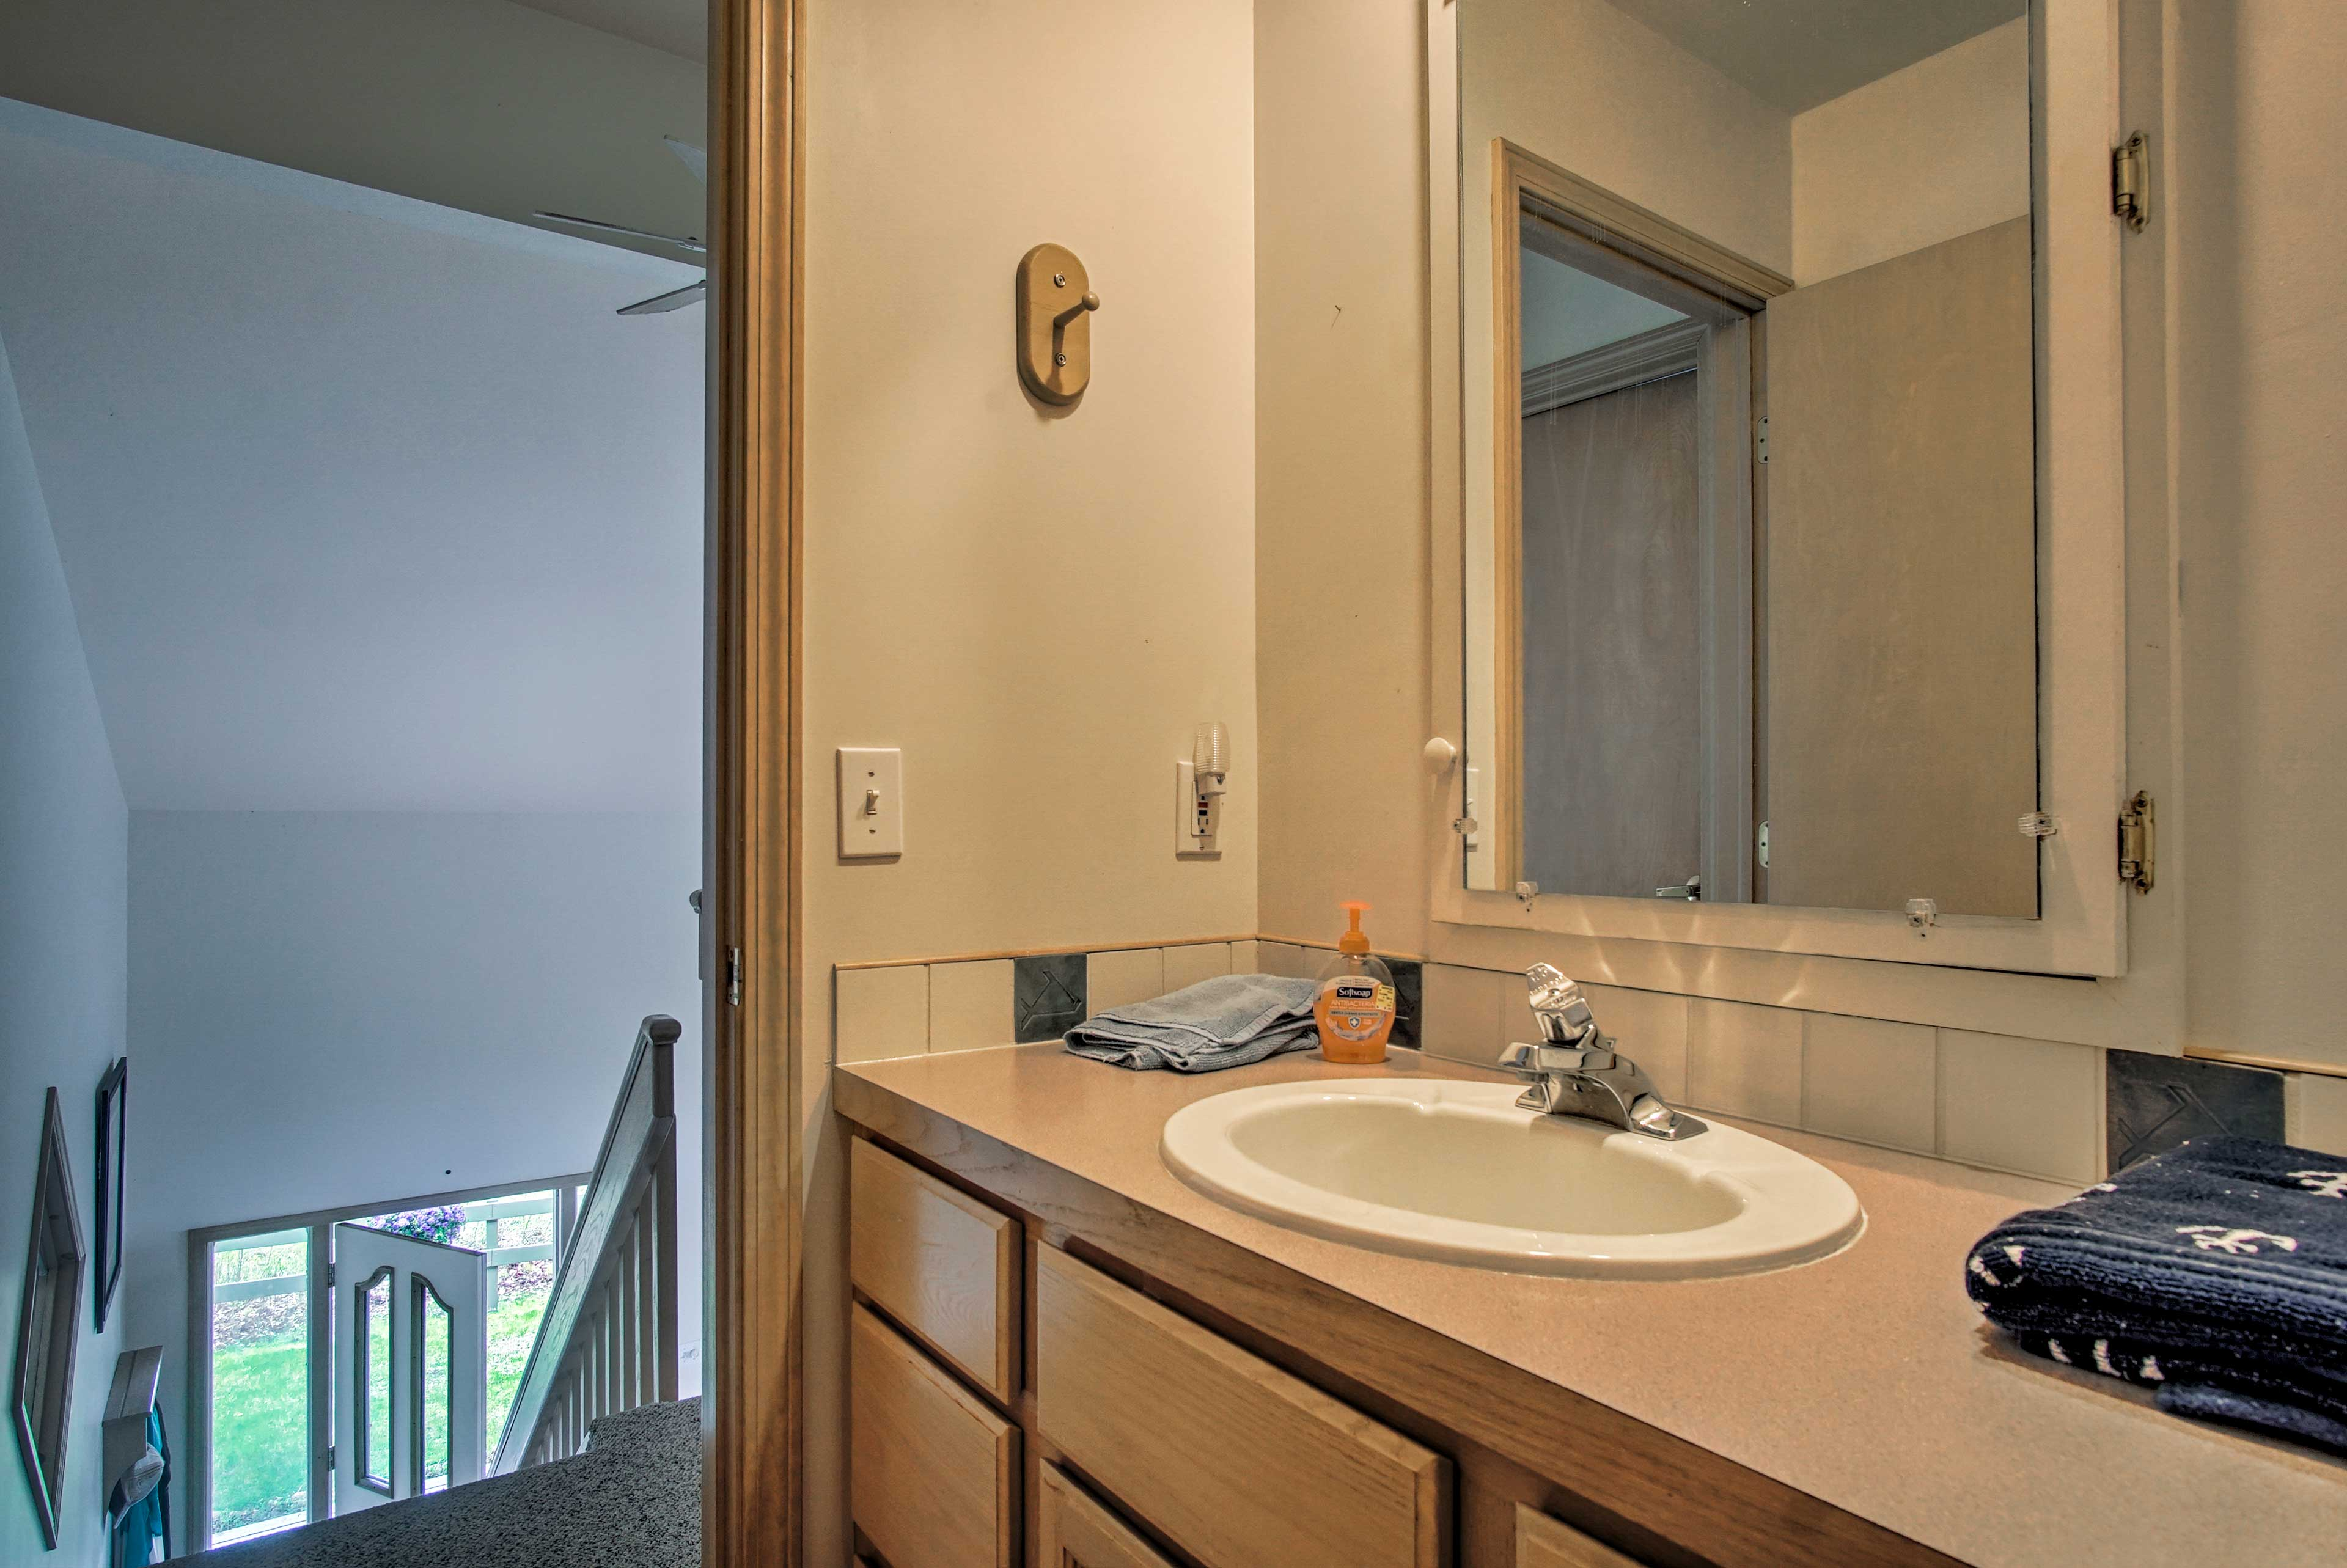 Towels and linens are provided during your stay.